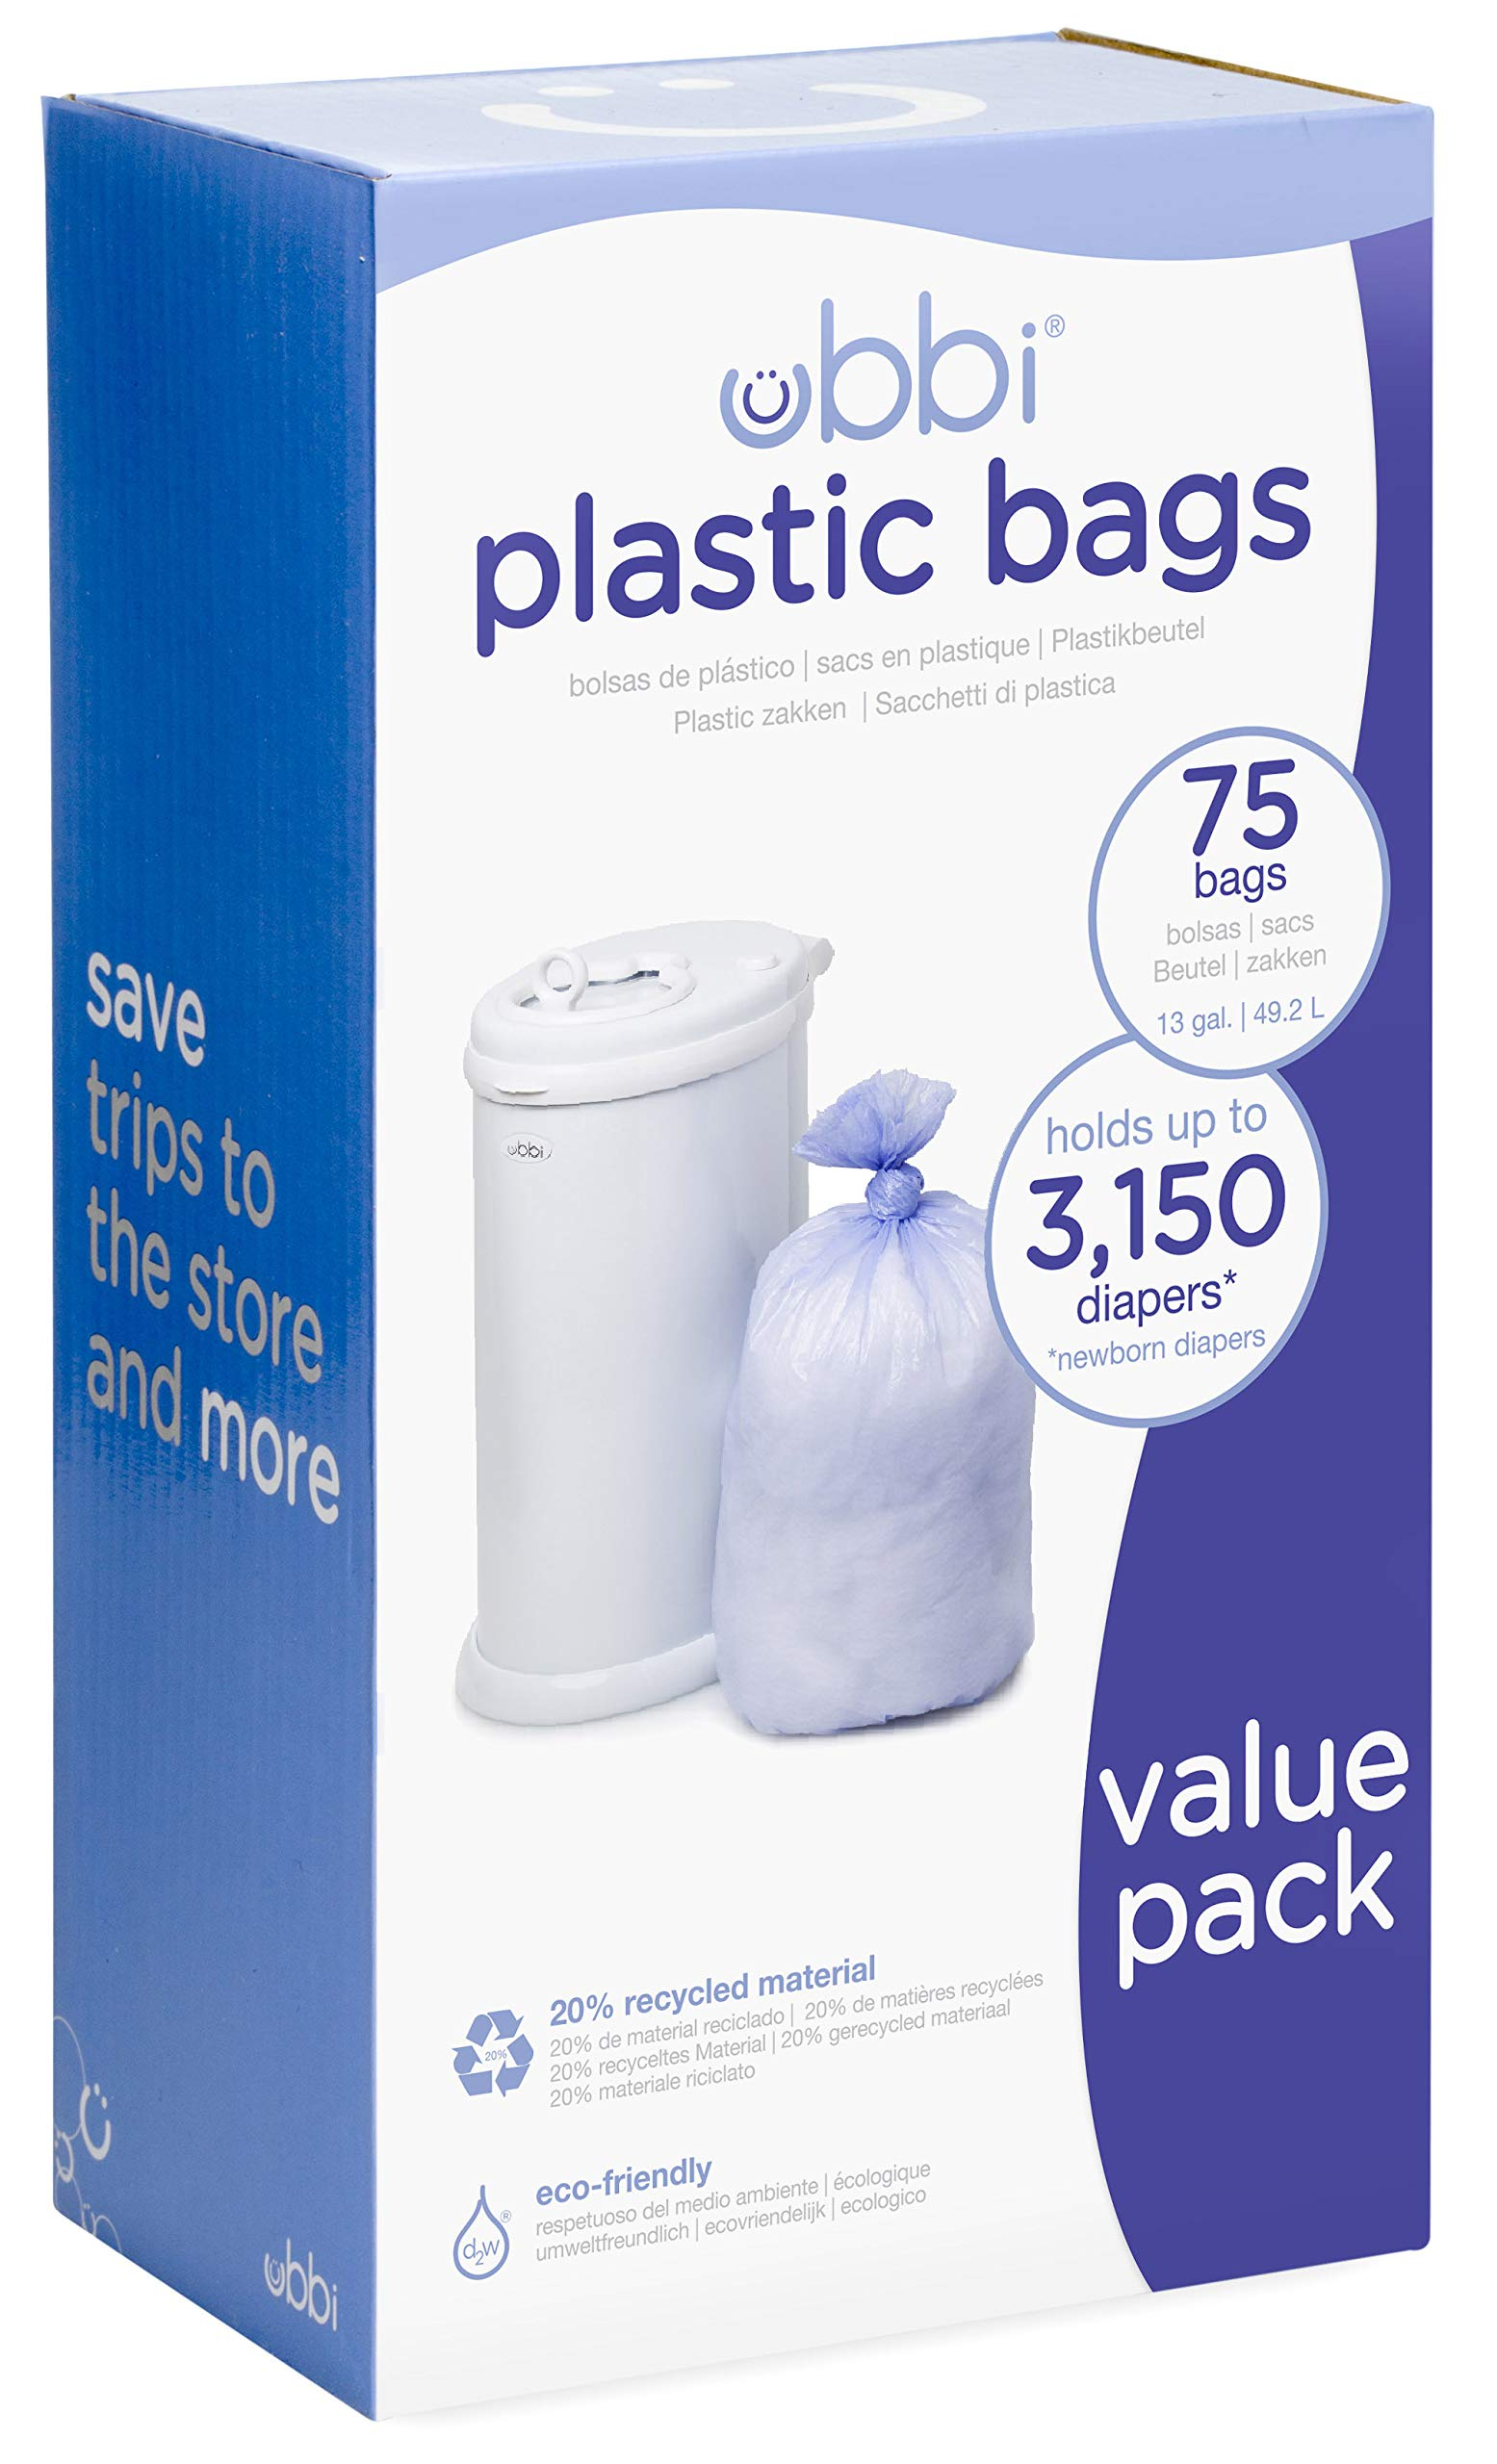 Ubbi Disposable Diaper Pail Plastic Bags, Made with Recyclable Material, True Value Pack, 75 Count, 13-Gallon by Ubbi